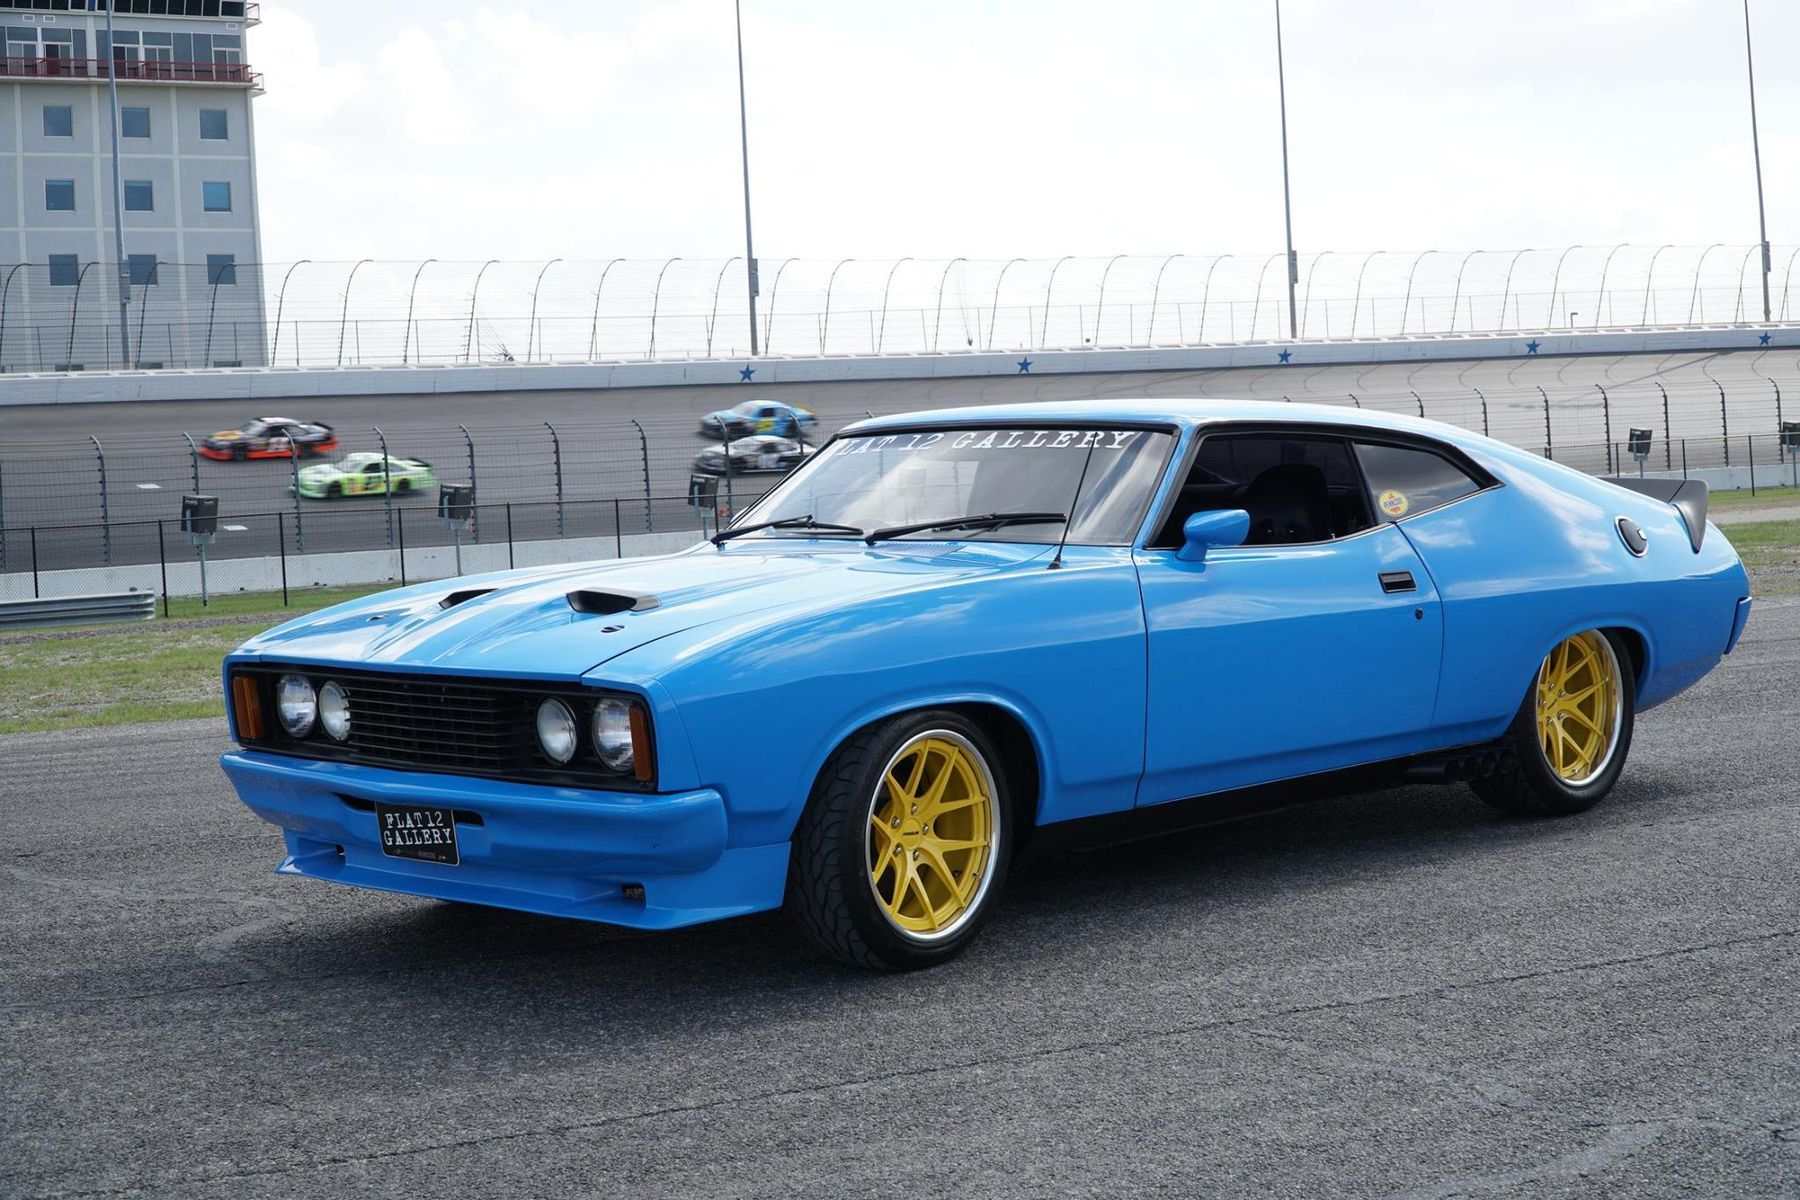 1976 Ford Falcon | Flat 12 Gallery's Ford Falcon XB GT at Auction